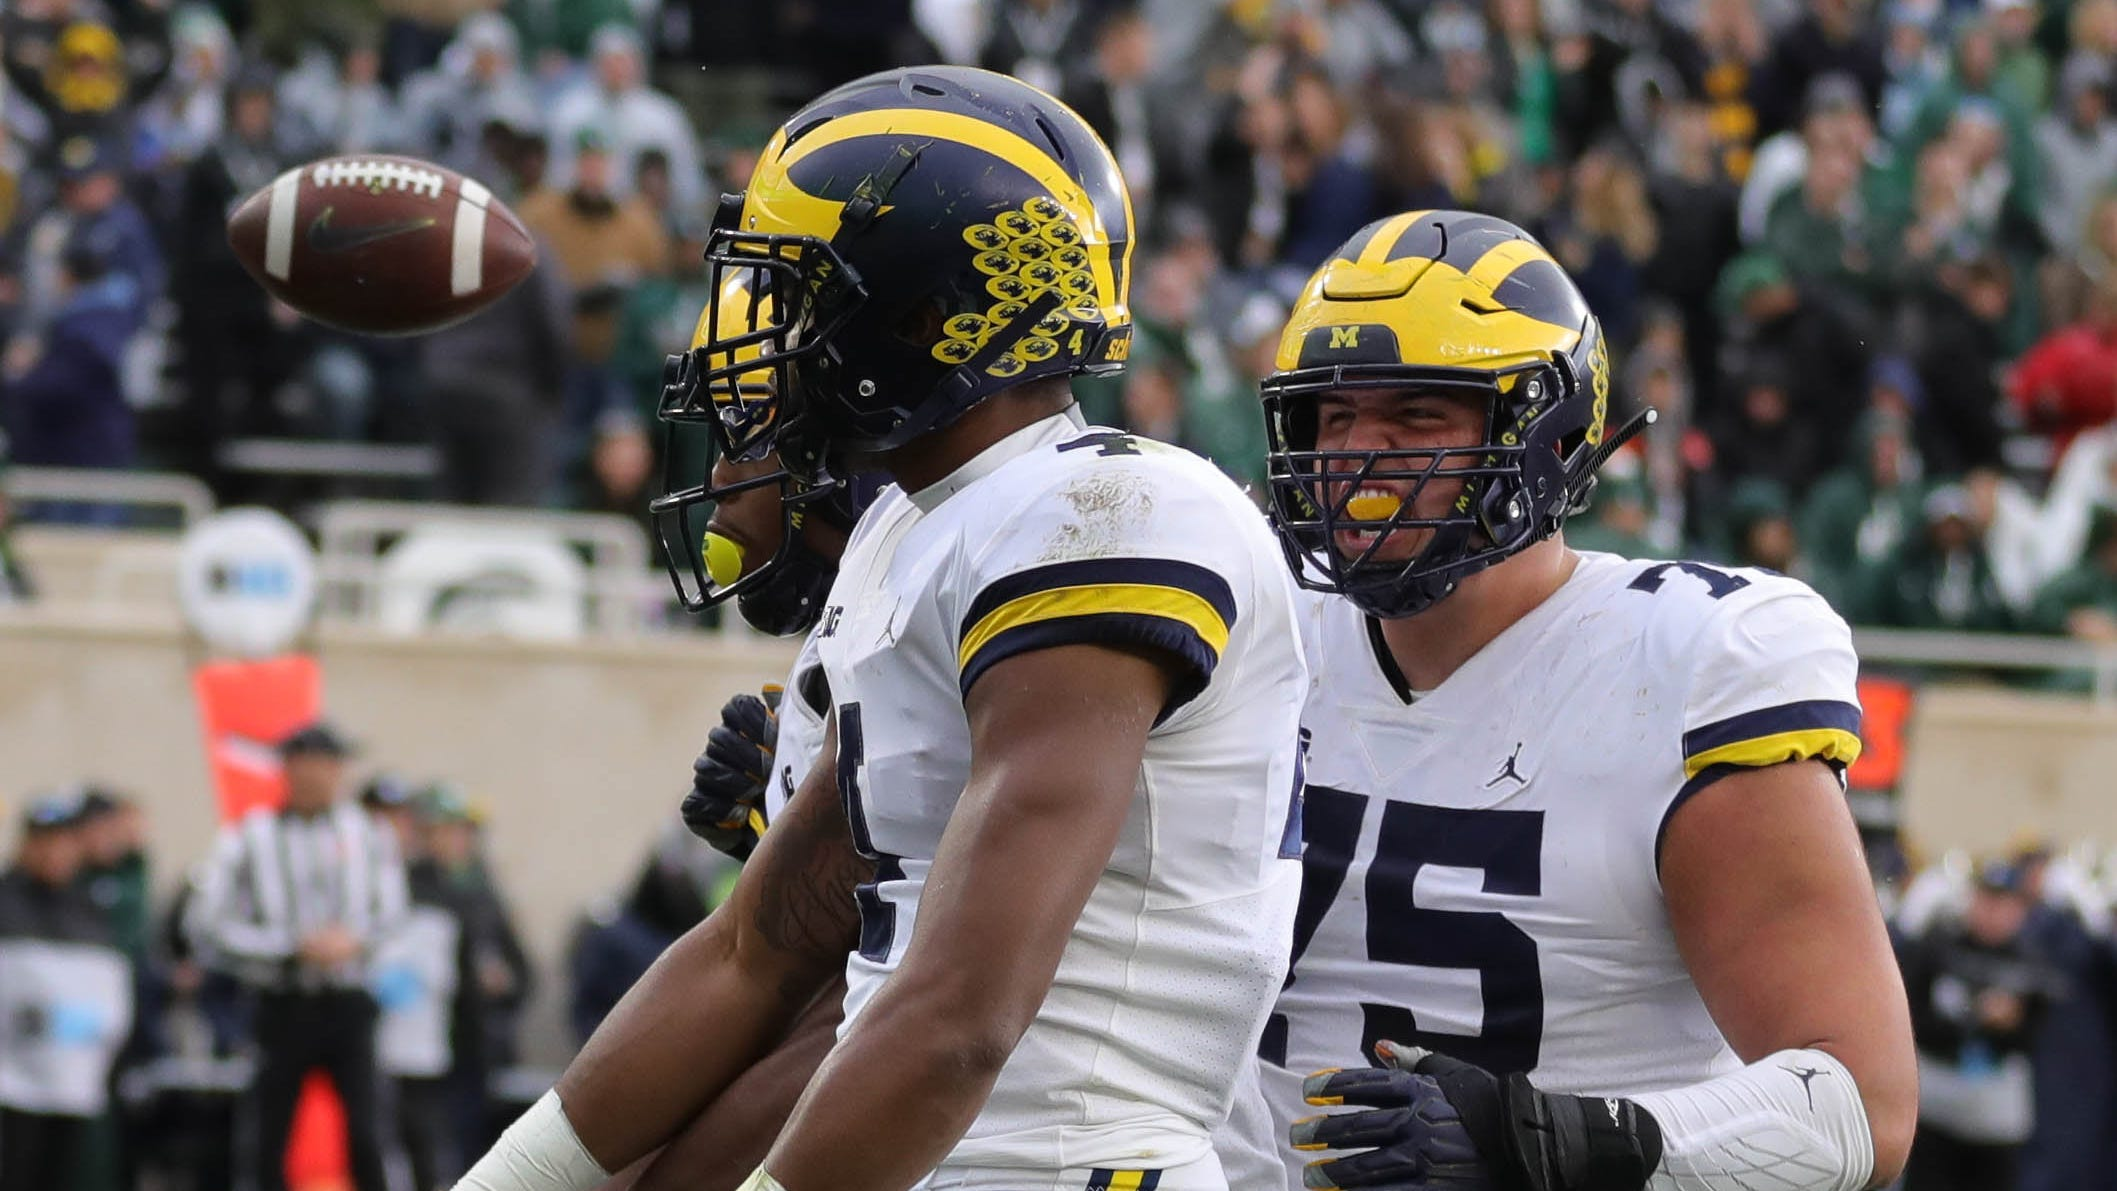 No. 7 Michigan proves too tough for rival Michigan State to stay unbeaten in Big Ten